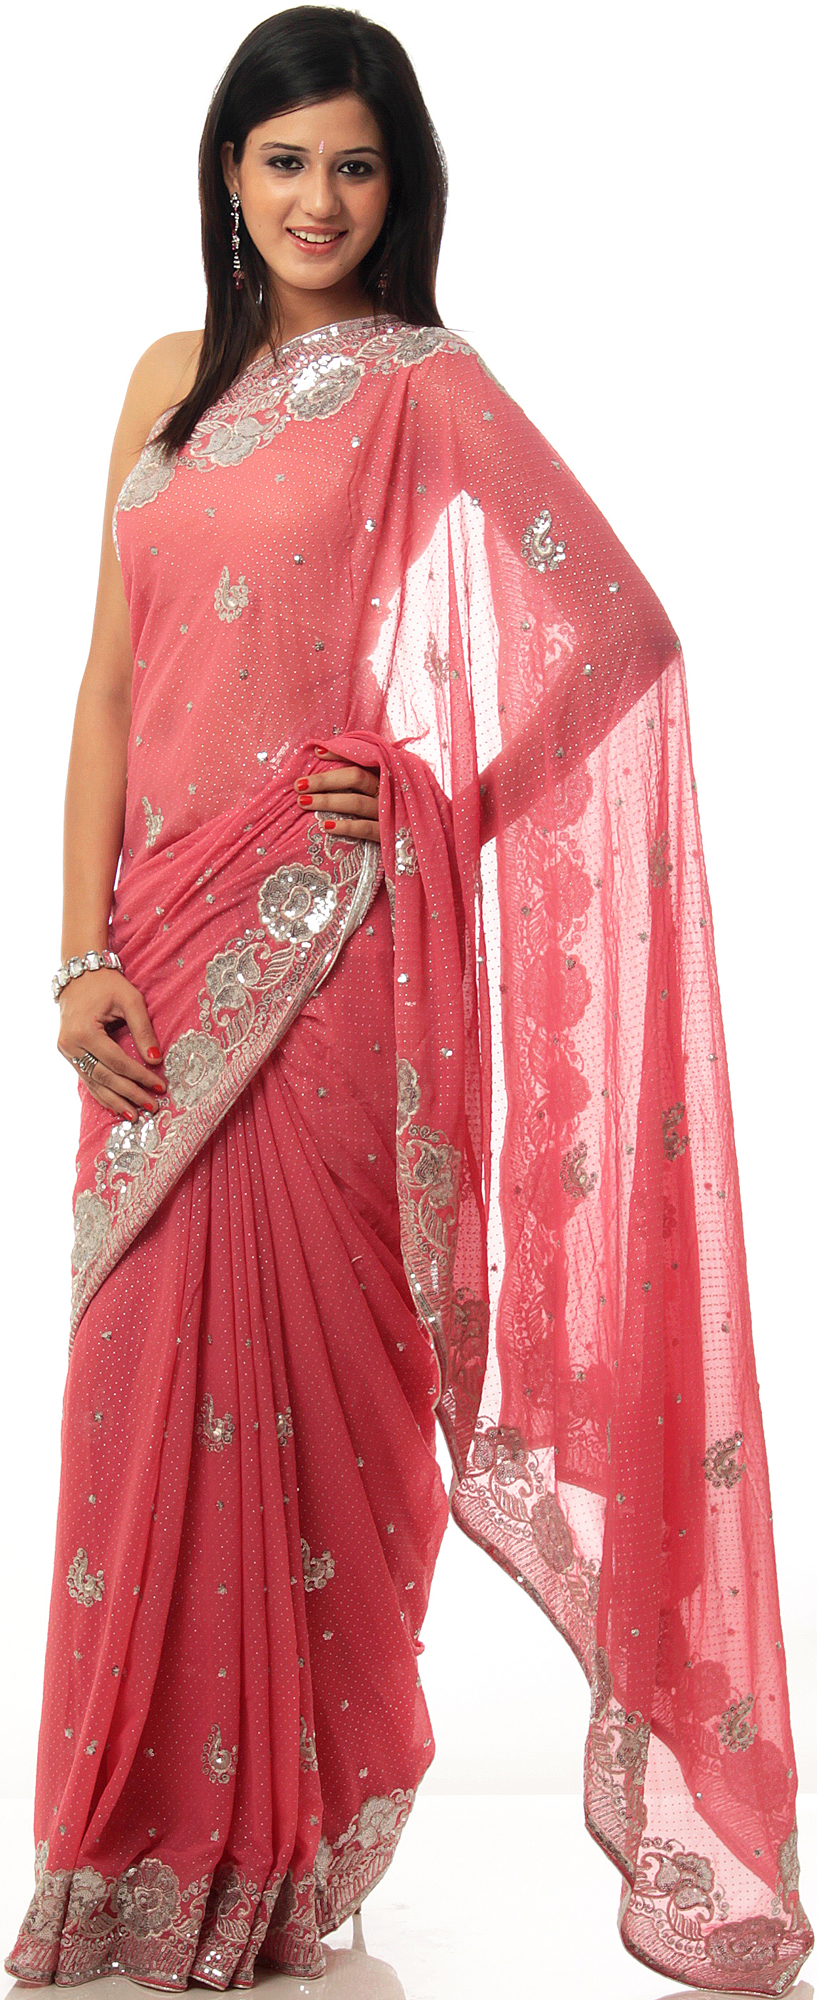 Rose Pink Sari With Crewel Embroidered Flowers And Mokaish